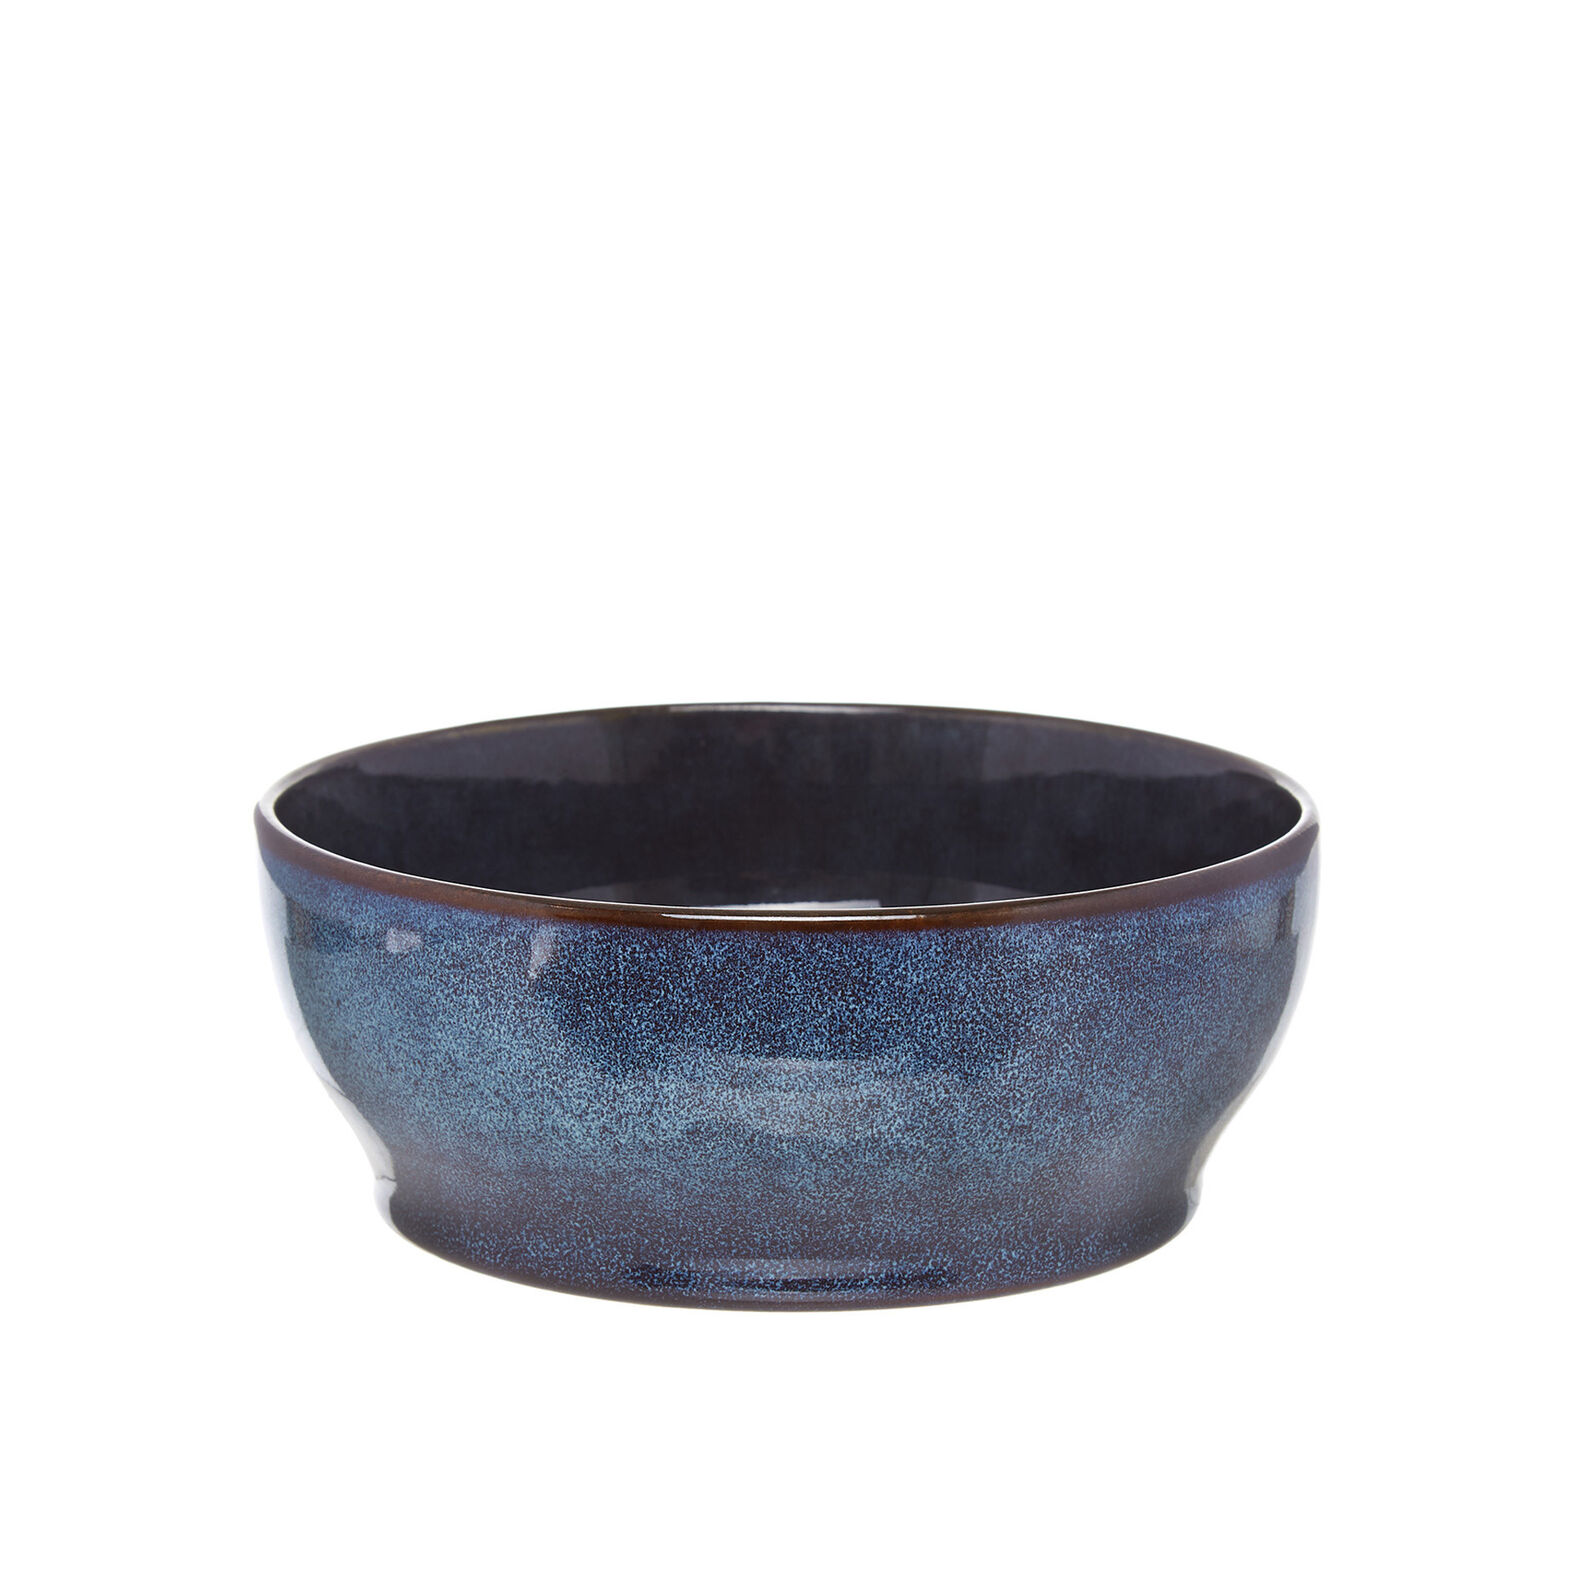 Space small bowl in stoneware with reactive glazes